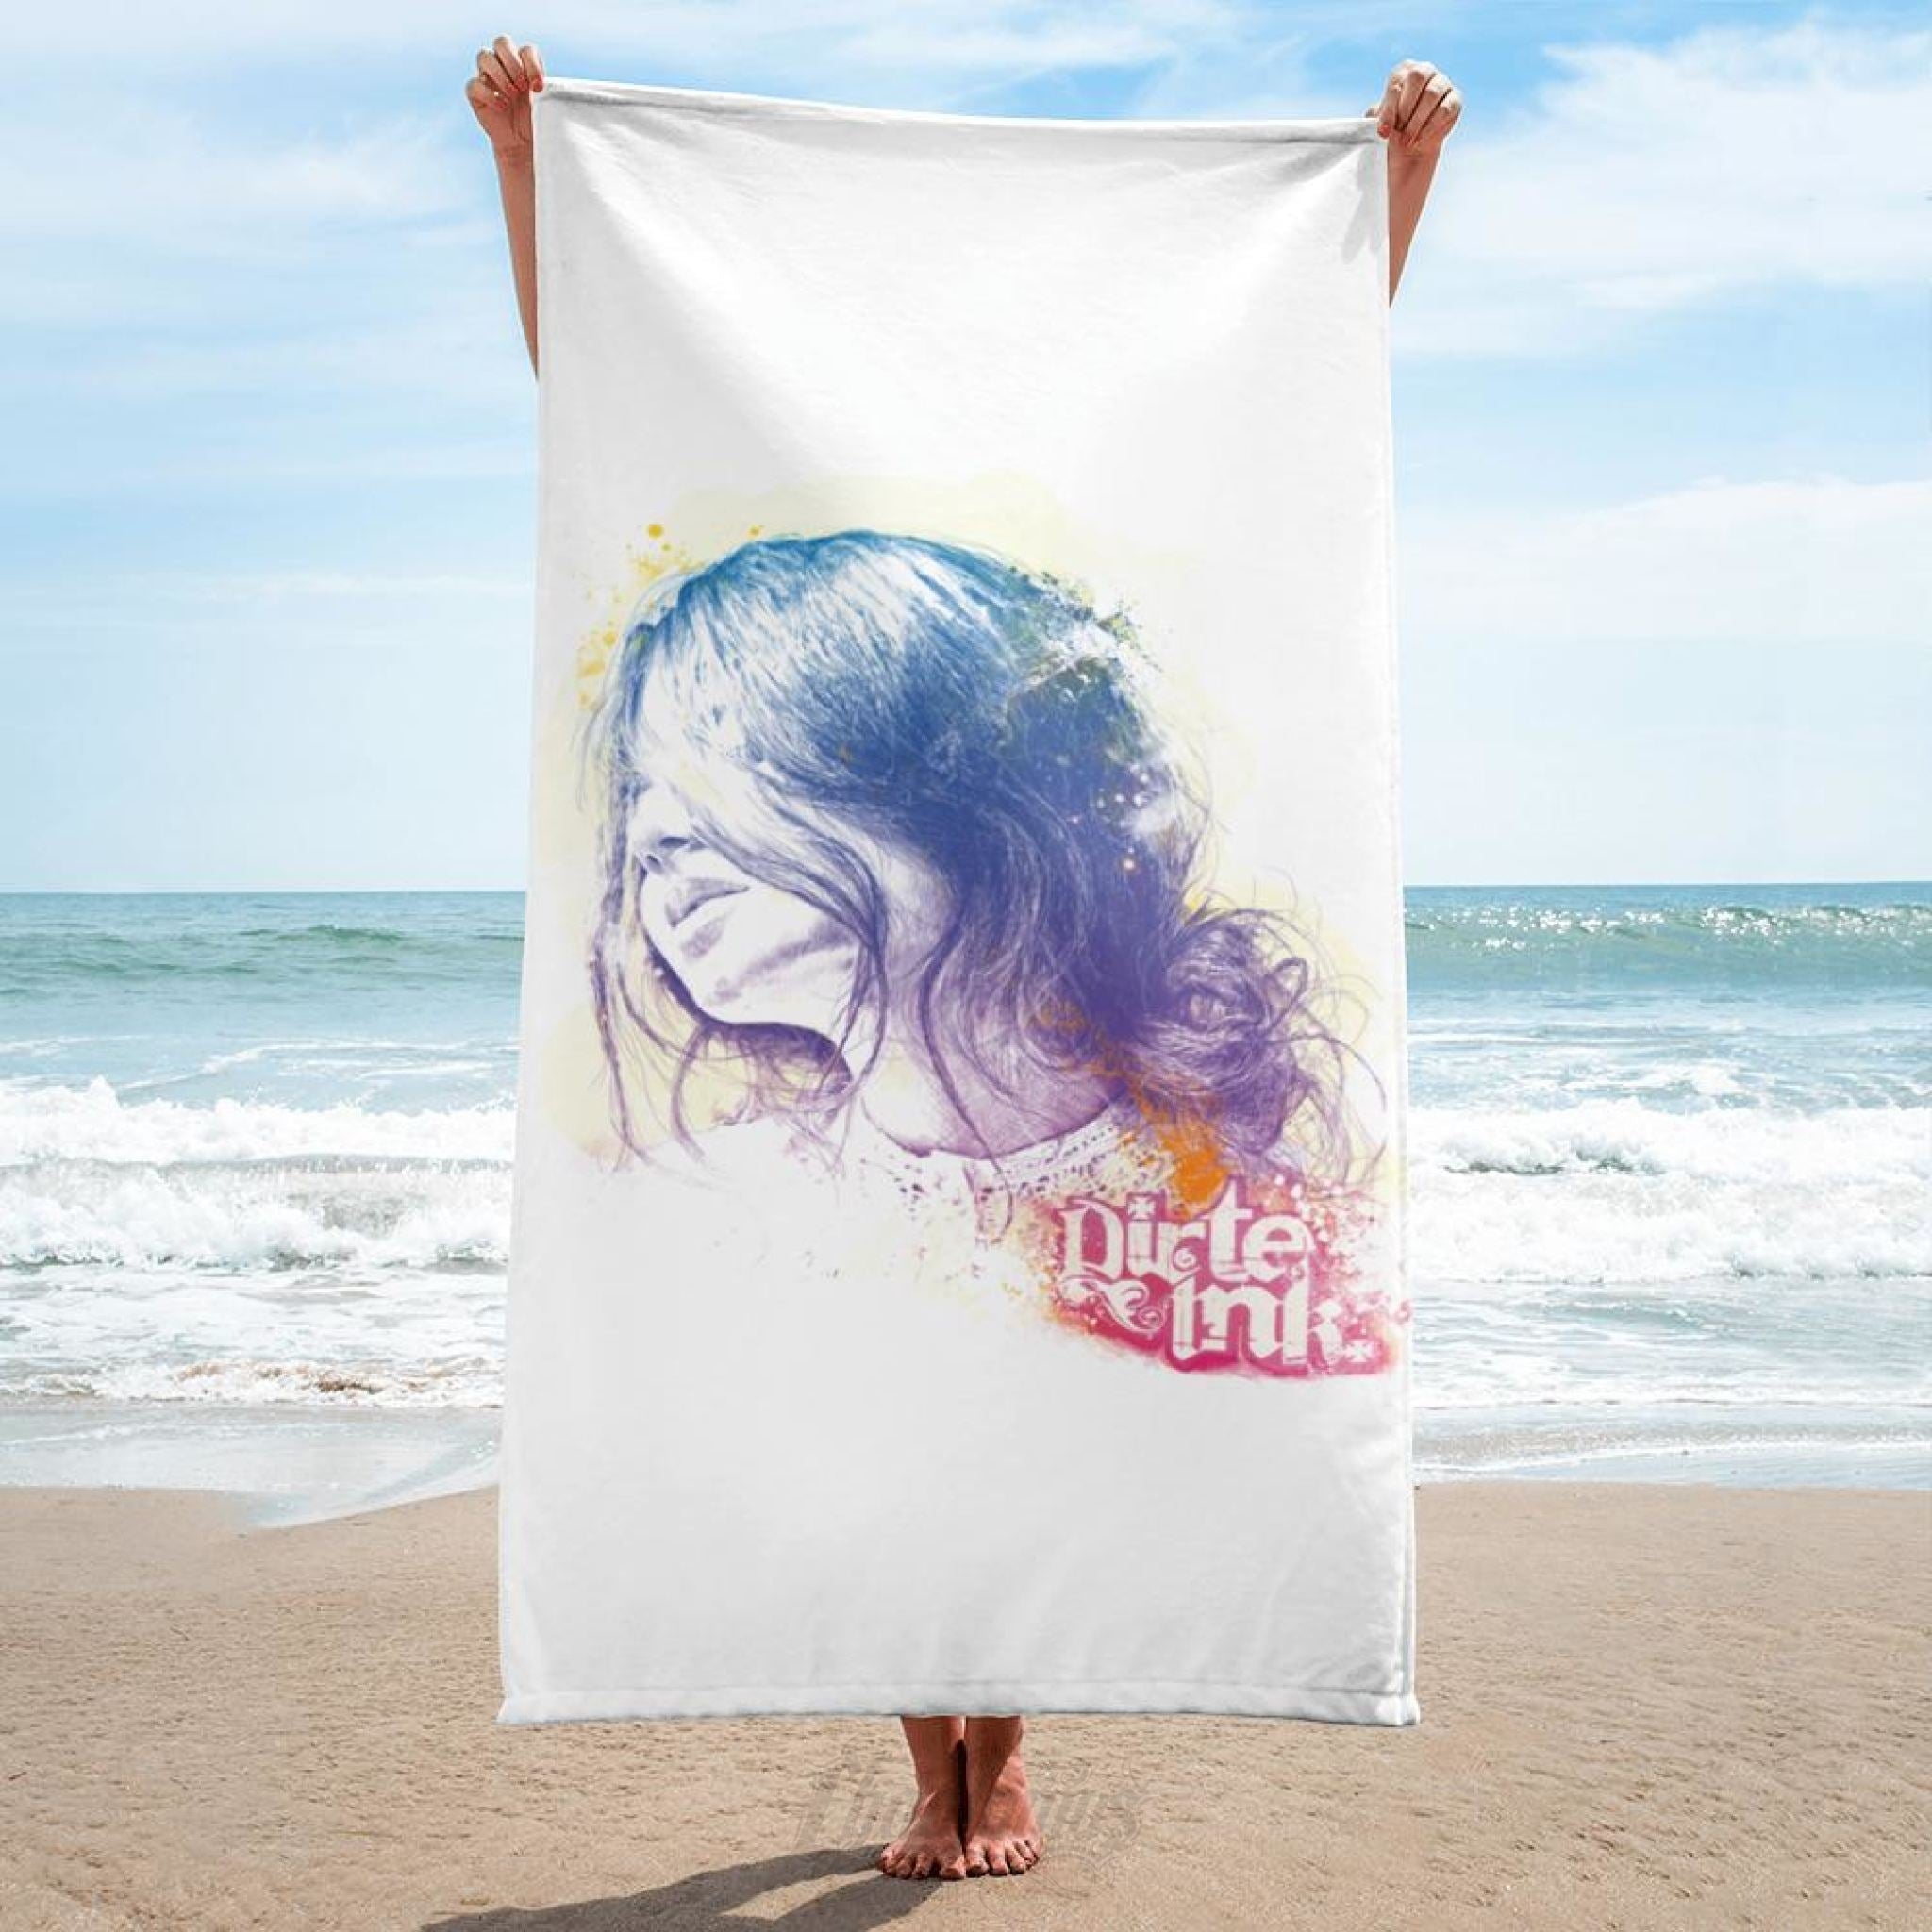 Dirte Inke - Memory Of A Moment - Towel Towels Chadlonius